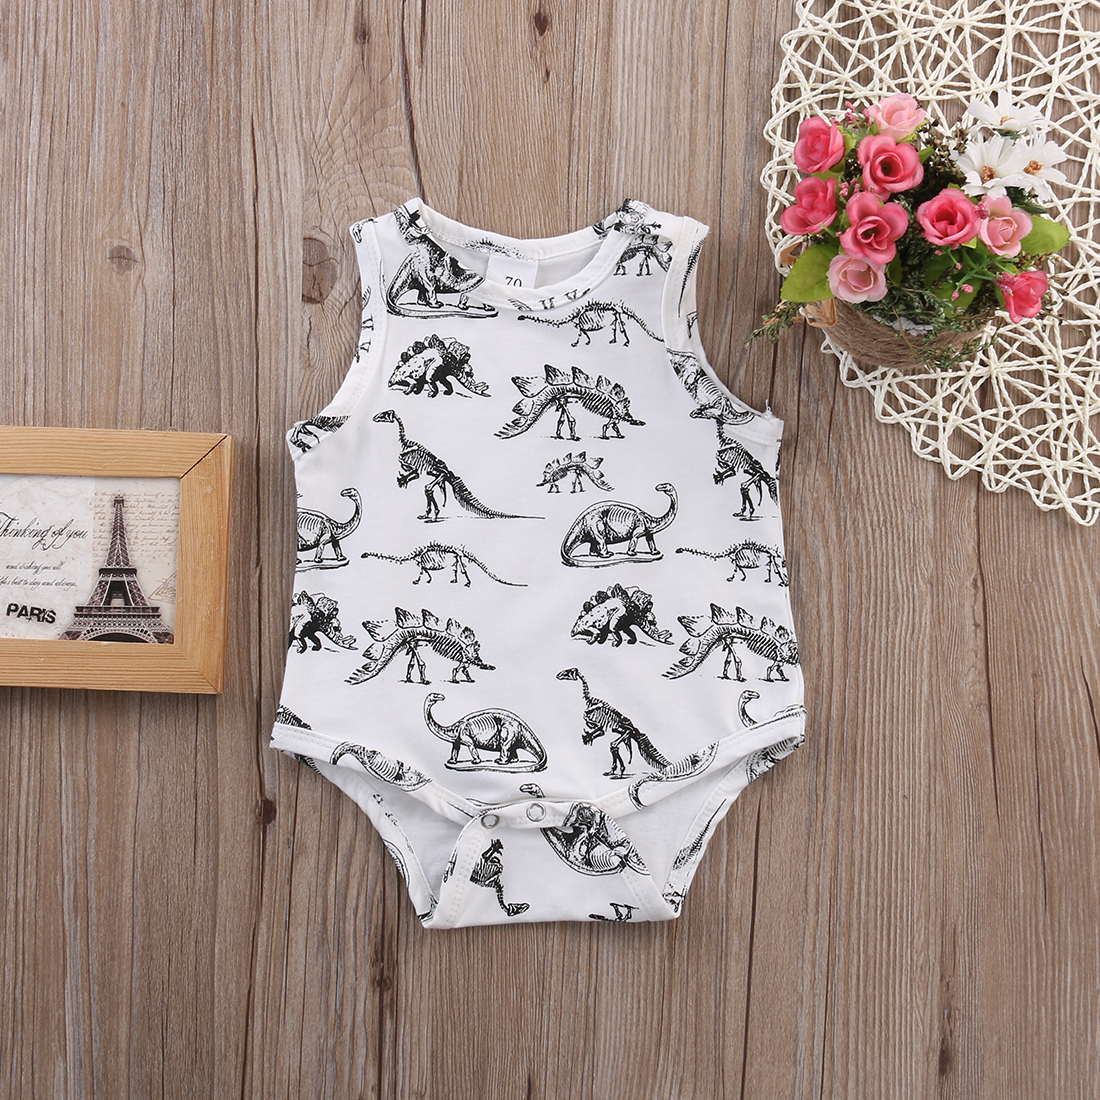 a83902bd301 2017 Summer Baby Boy Clothing Cute Cartoon Dinosaurs Baby Rompers  Sleeveless Baby Romper White Newborn Bebe Clothes-in Bodysuits from Mother    Kids on ...